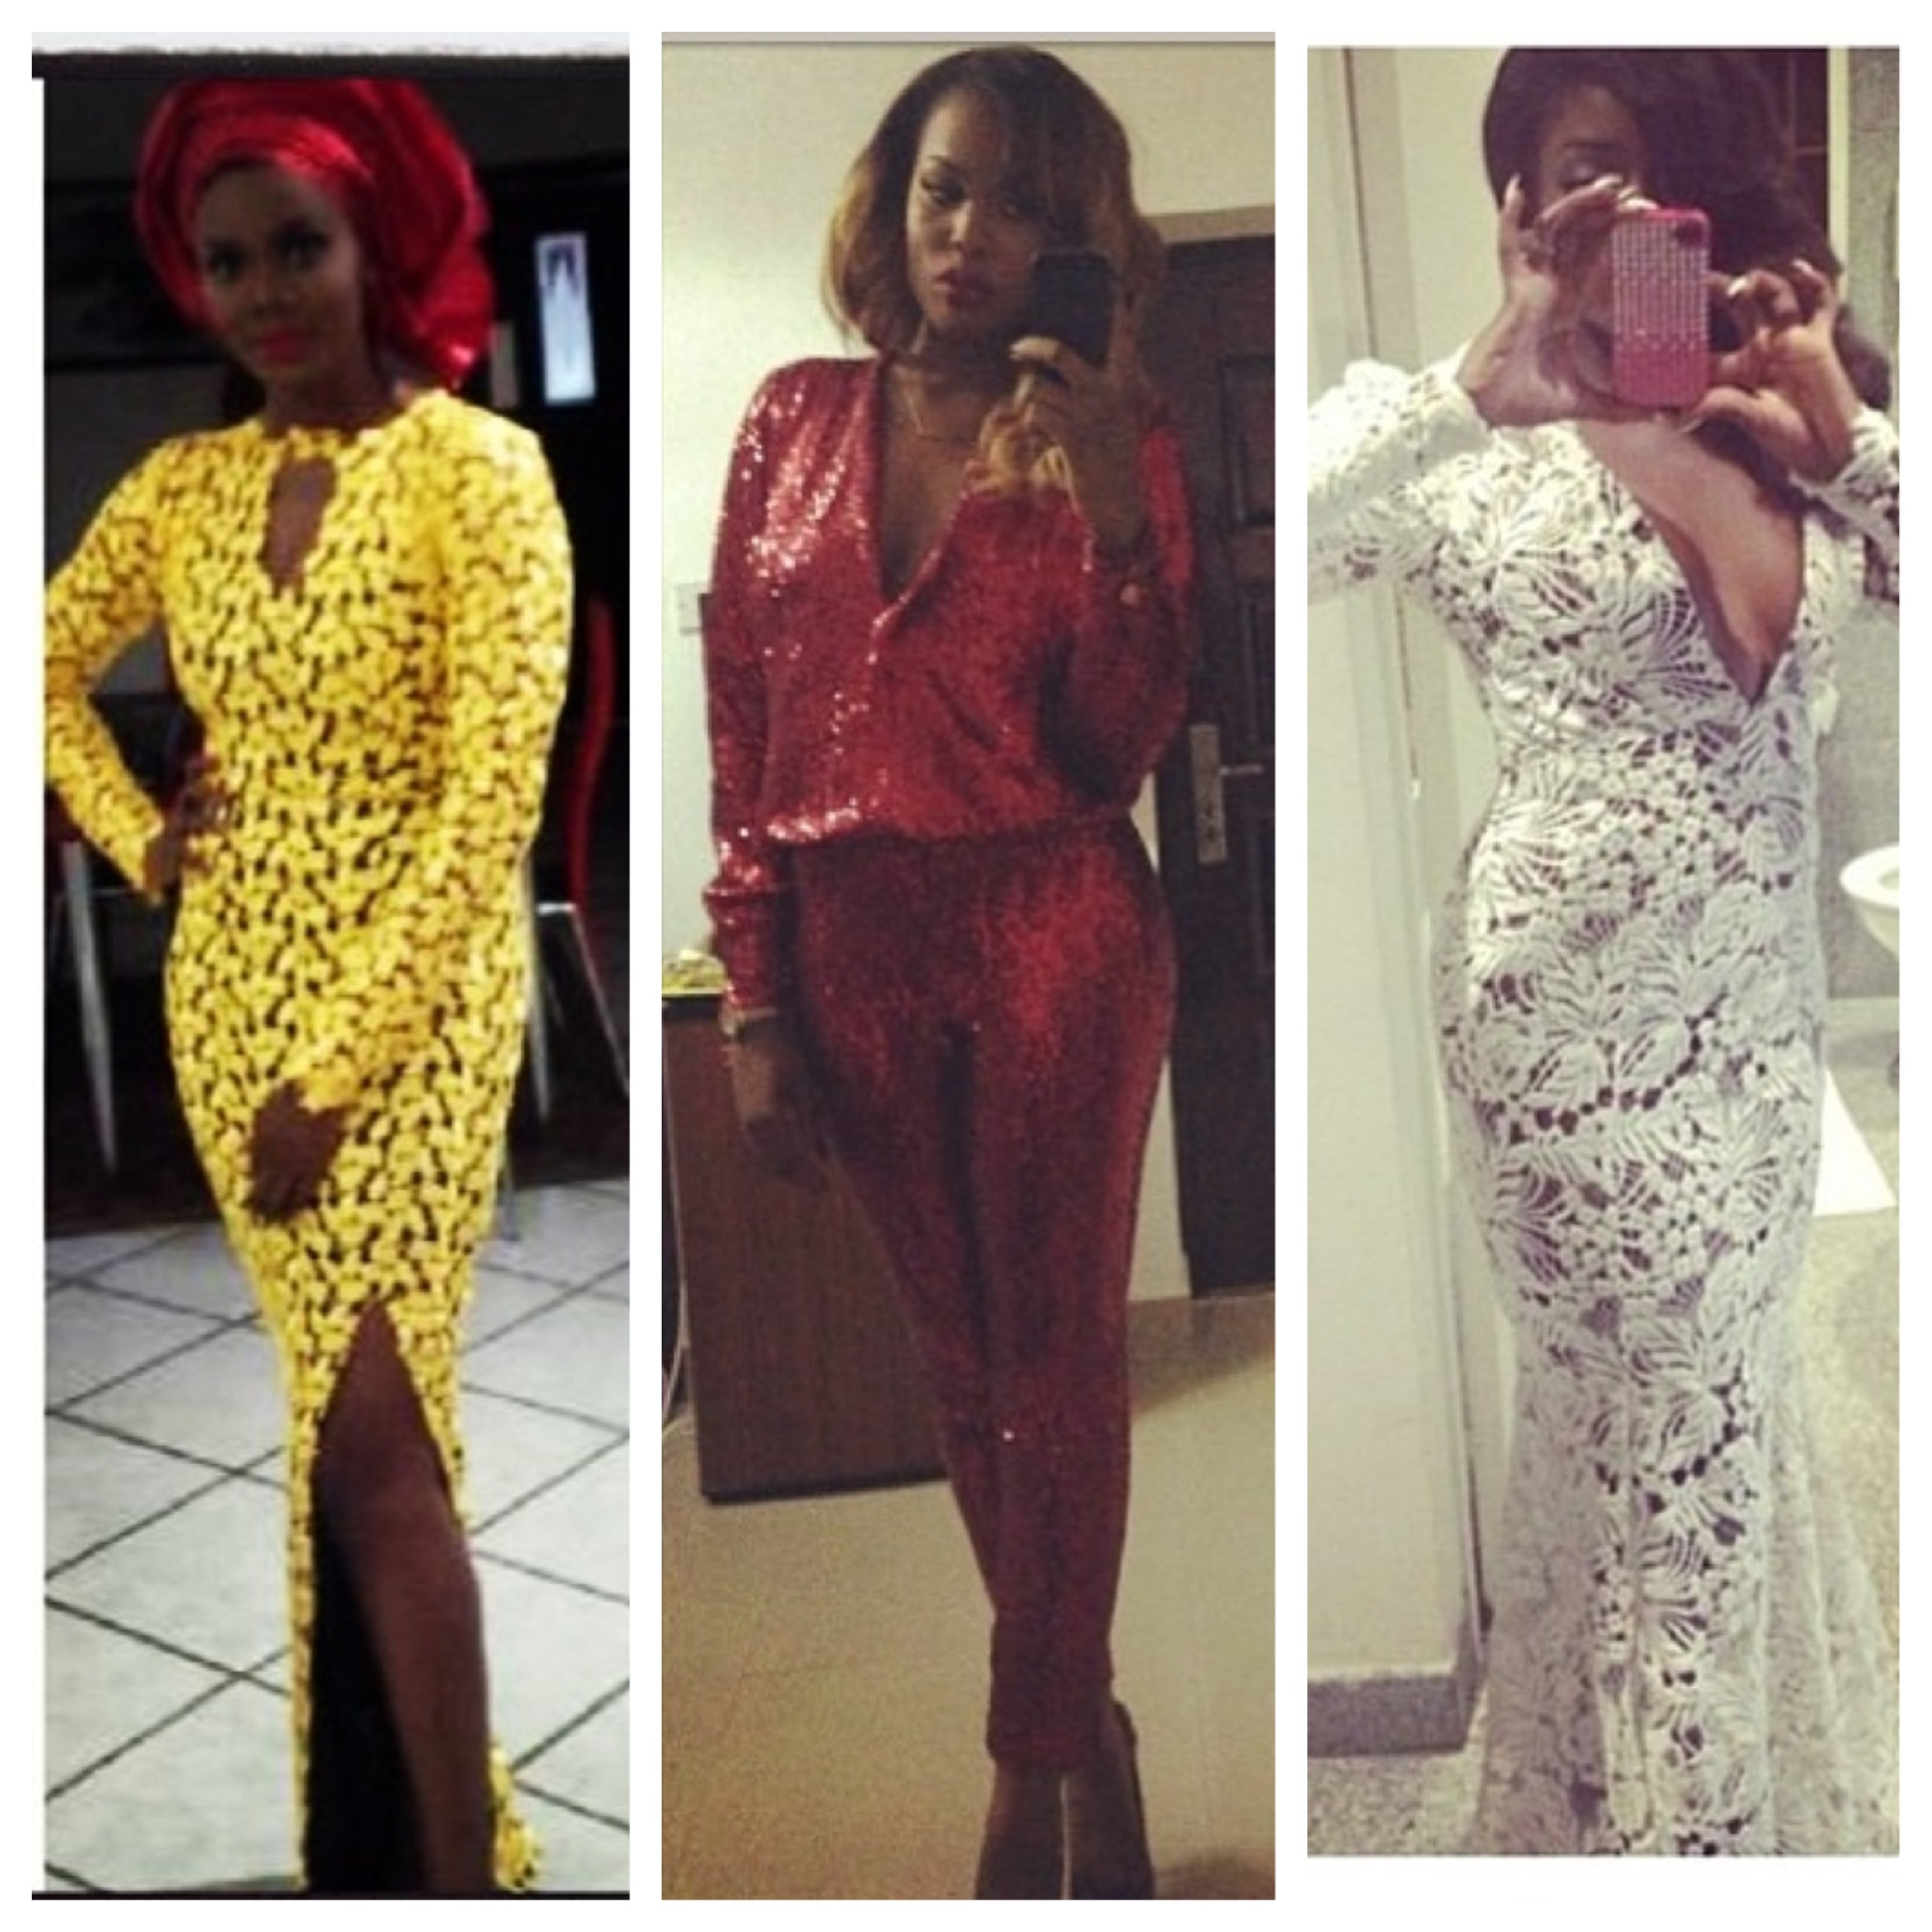 You thought Guipure lace and Iro and Buba were styles of your mom's time right? Well think again.  Nigeria's Matopeda (Tope) Abiola of Frock it Rock it is making these classic trends new again.  From sculpted Guipure lace gowns with sexy cut-outs and modern numbers like the sequined romper pictured above, to well placed printed silk and chiffon Iro & Bubas Tope is giving old styles a fresh take.  So if you've been wondering why you've been seeing Guipure Lace on everyone from Kim K to Zara fast fashion spreads, wonder no more.  Tope makes all styles by request so whatsapp her at 011 234 708 036 7773.  Photos from instagram @topeFnR